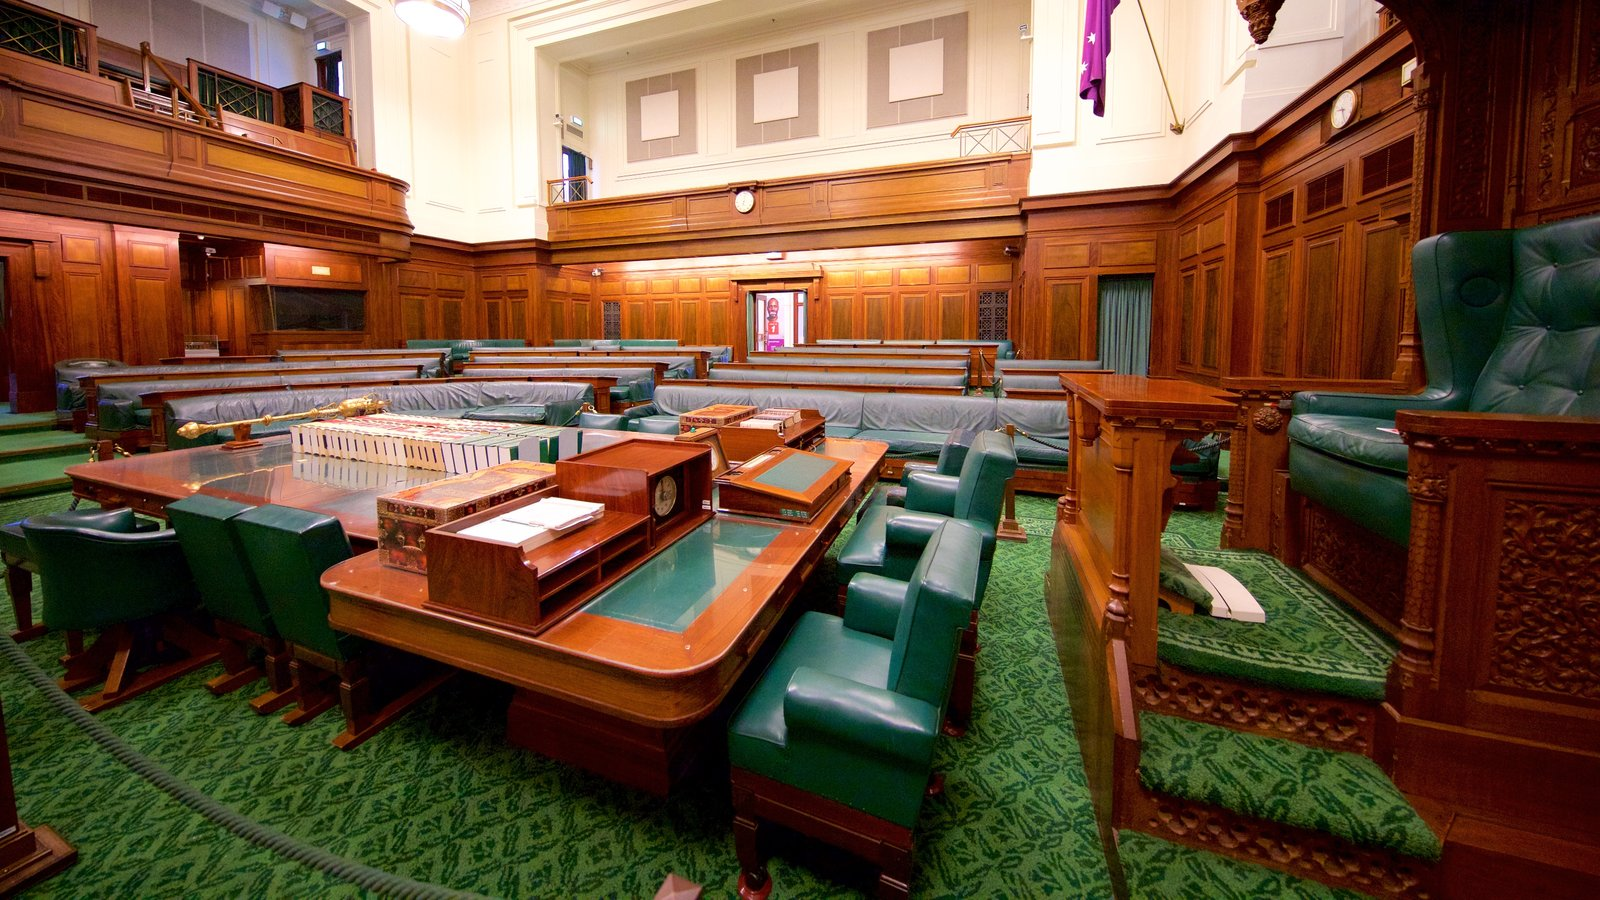 Old Parliament House Showing Interior Views And An Administrative Building